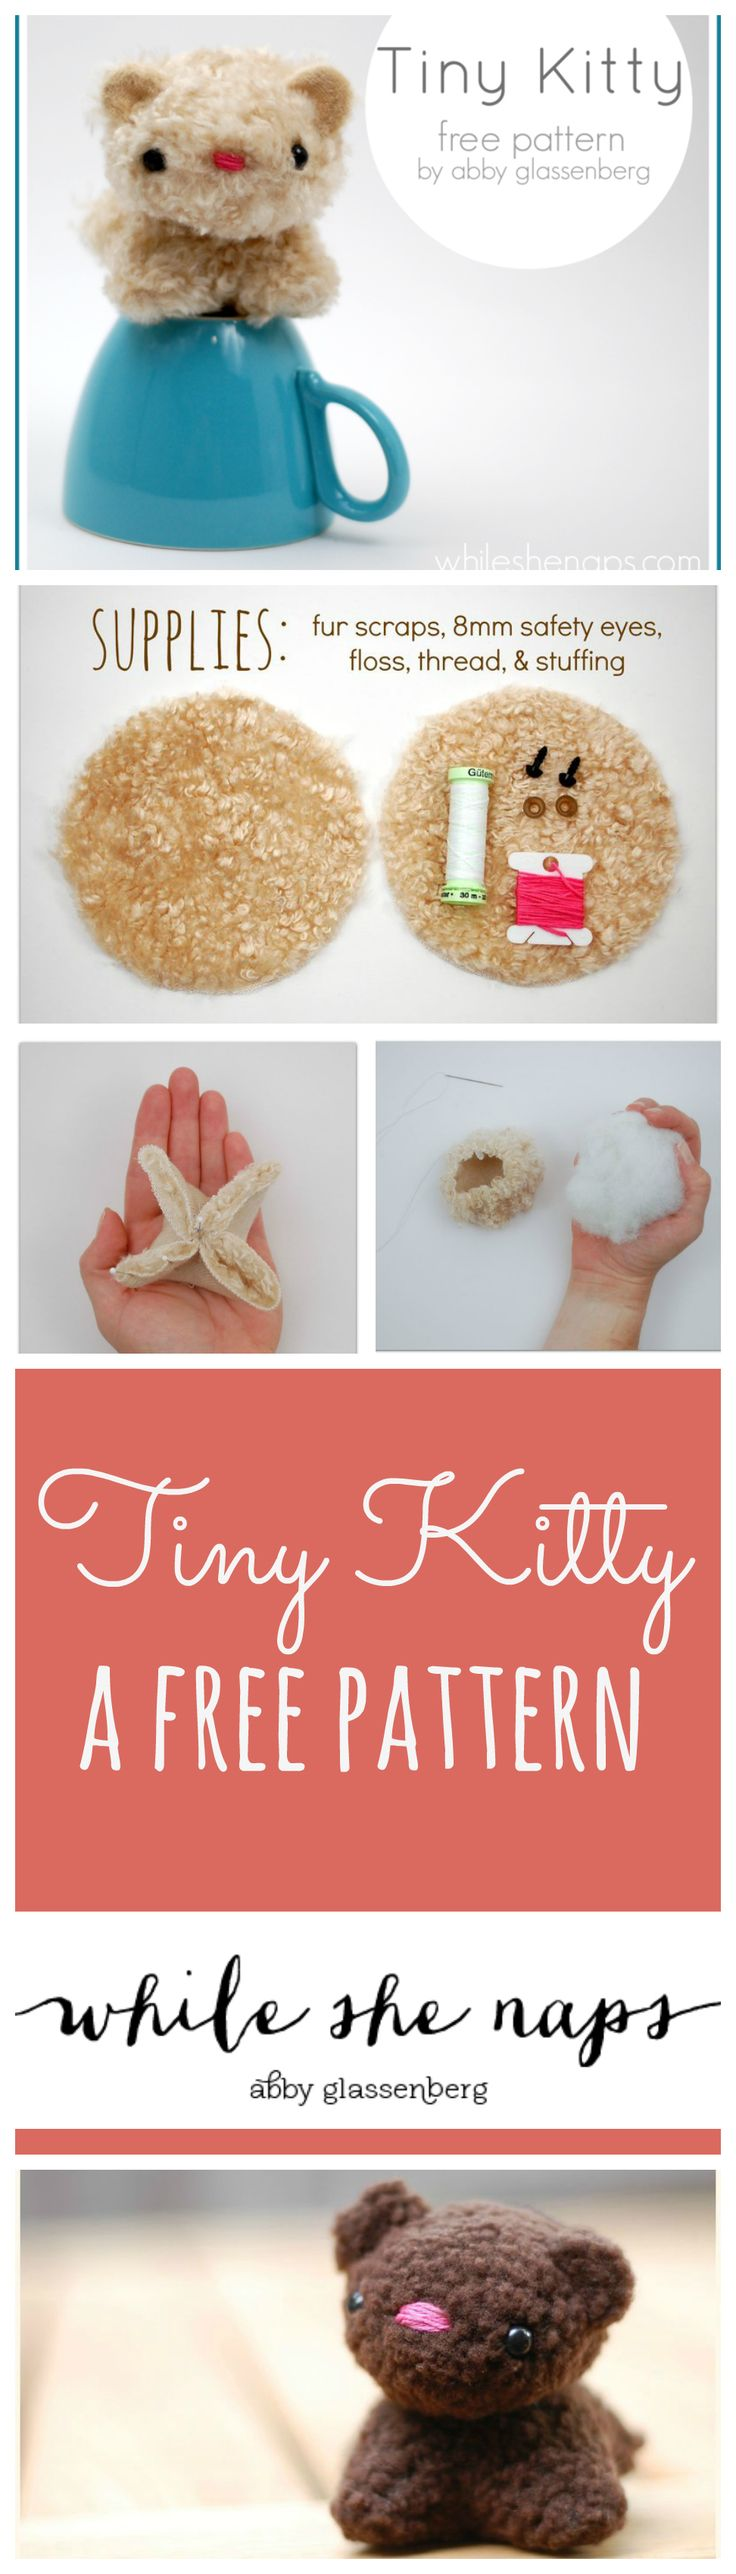 A free pattern for a Tiny Kitty